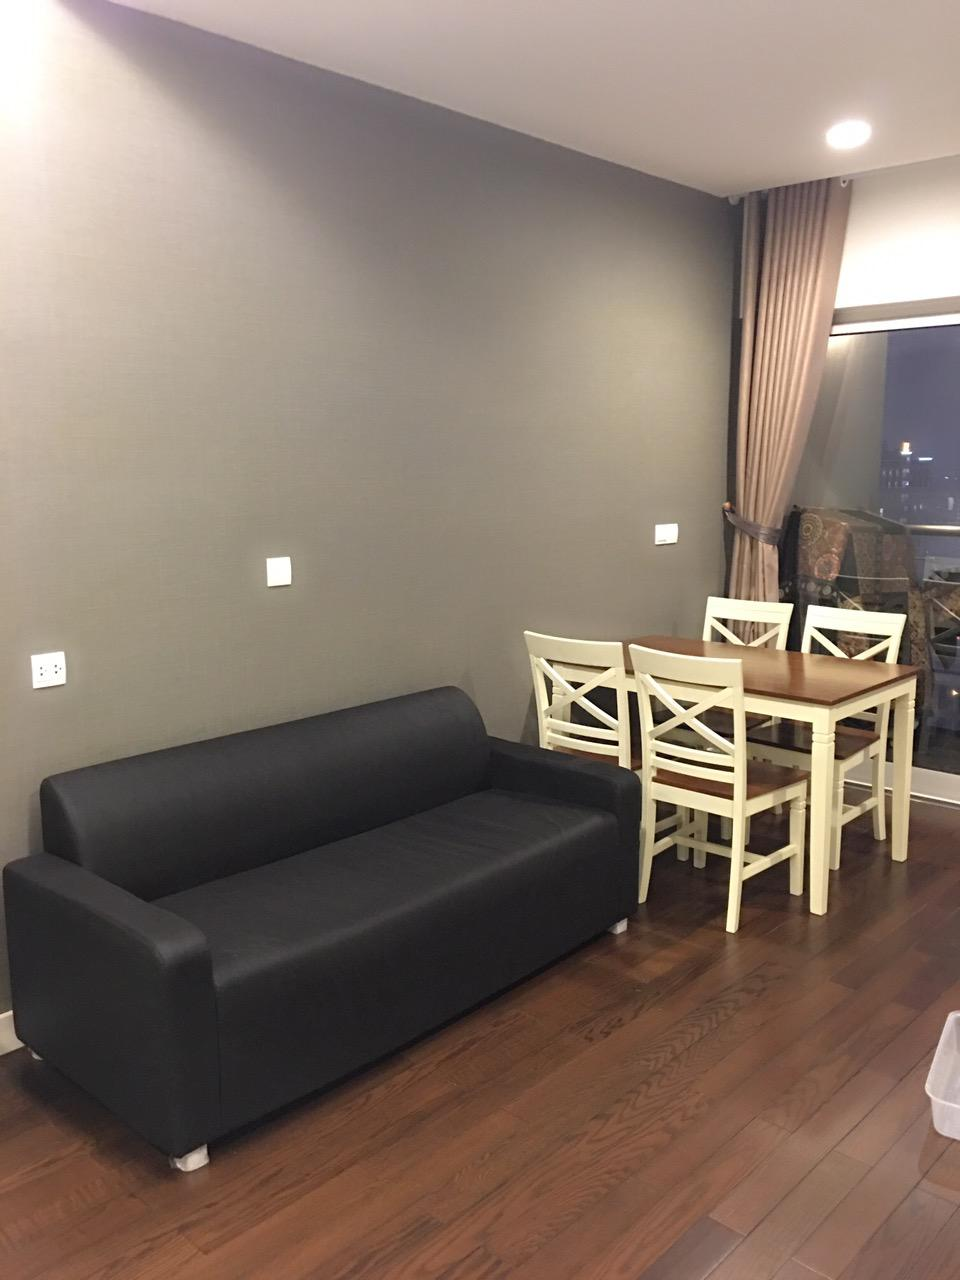 Lake view Studio serviced apartment in Lancaster, Ba Dinh district for rent